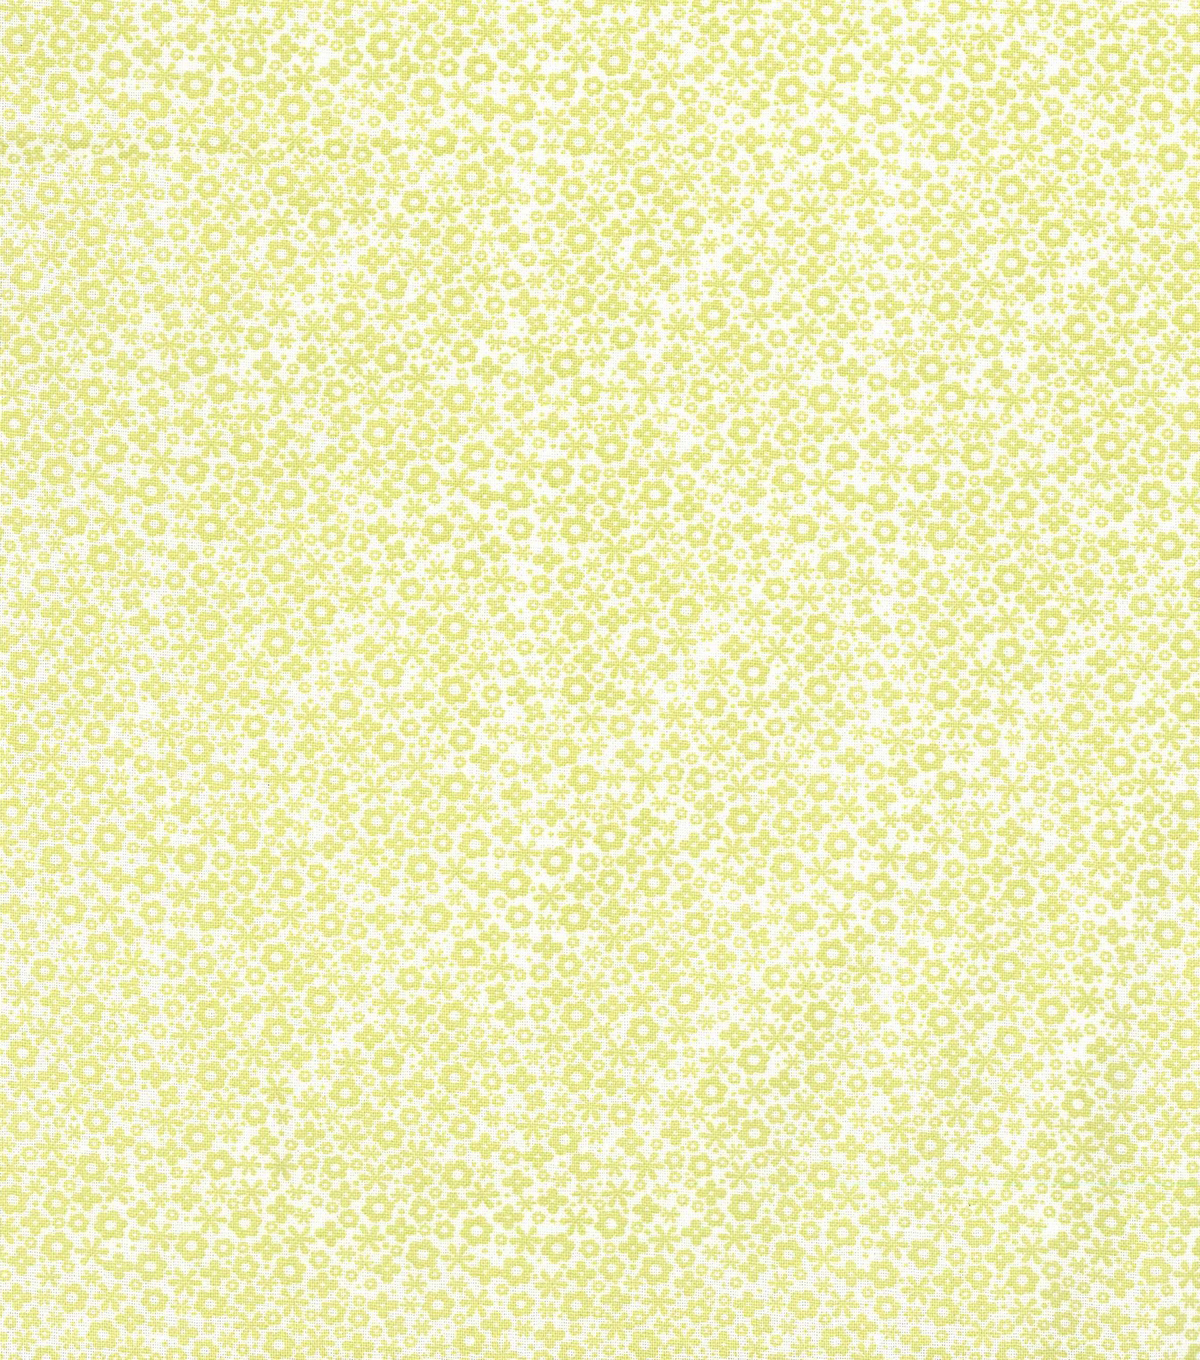 Keepsake Calico Cotton Fabric -Pretty Ditsy Lime